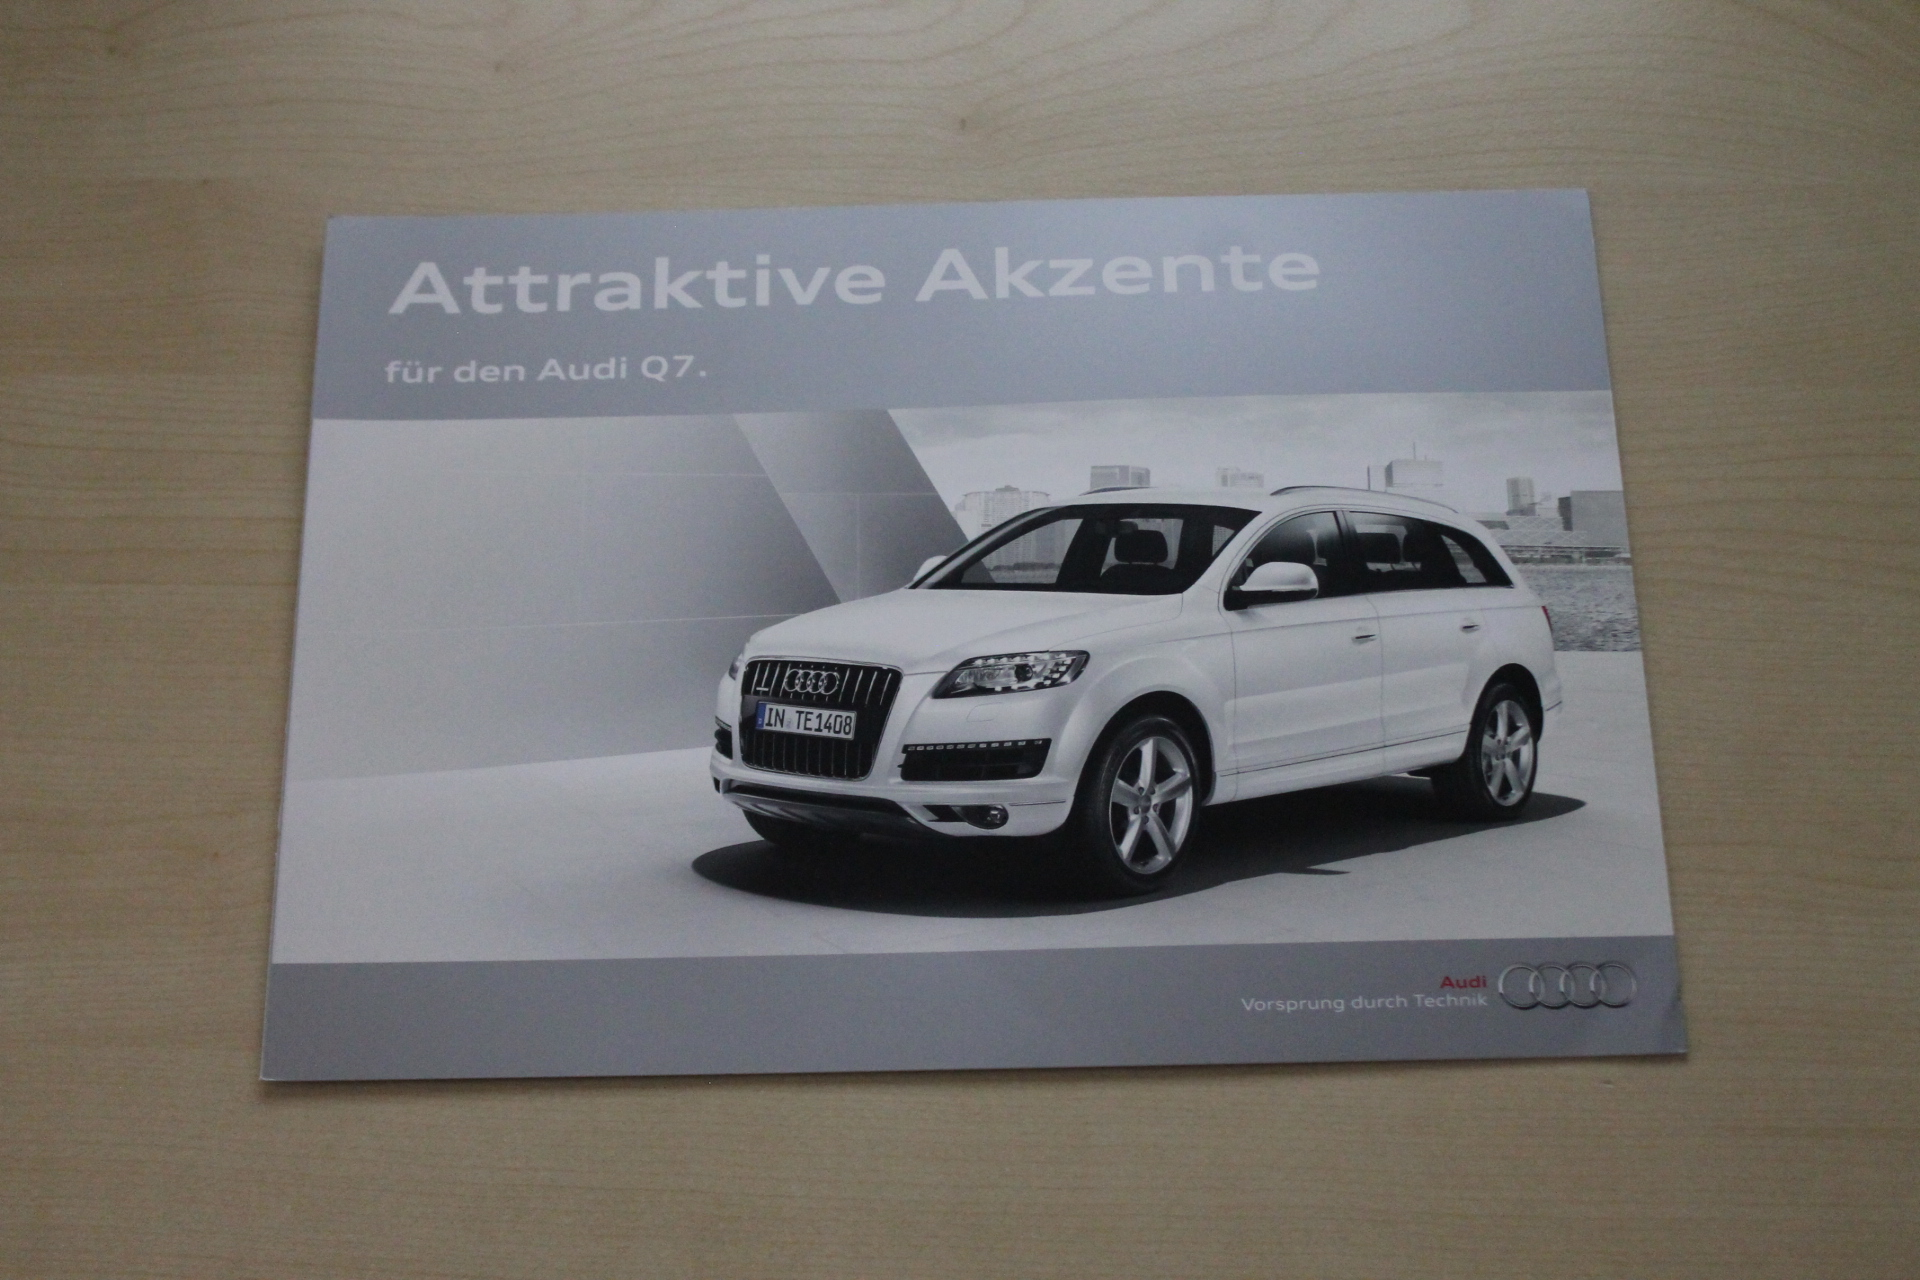 Audi Q7 - Komfortpaket plus - Innovationspaket - Prospekt 05/2012